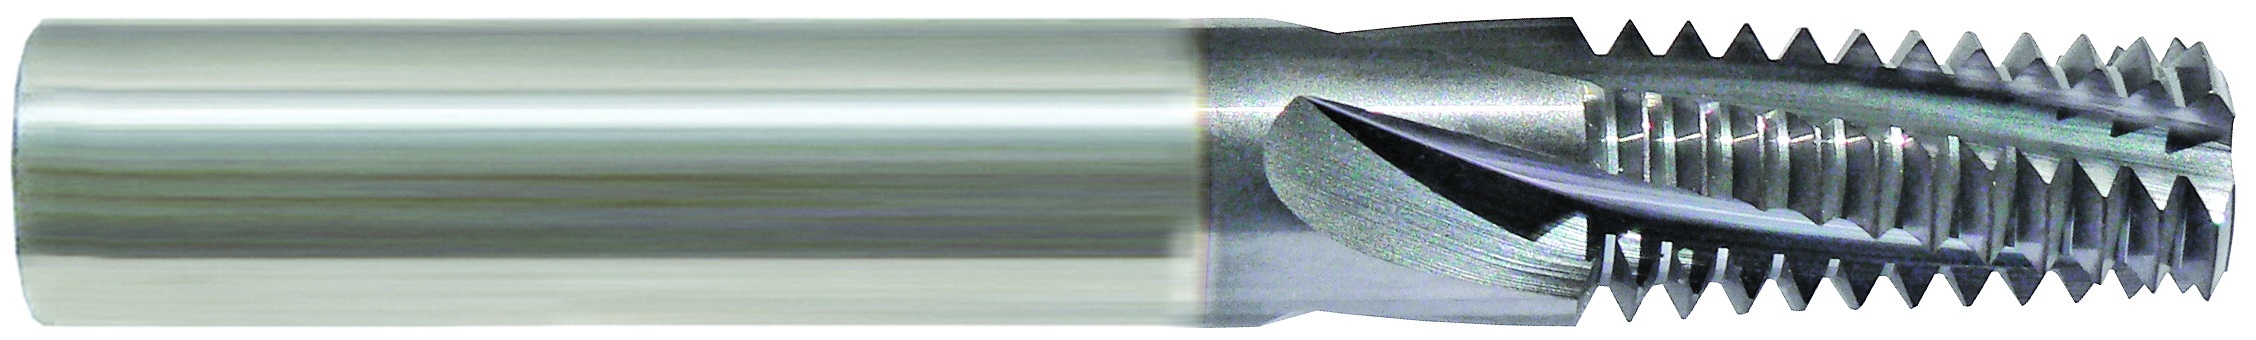 M6-1.00 MC SOLID CARBIDE THREAD MILL